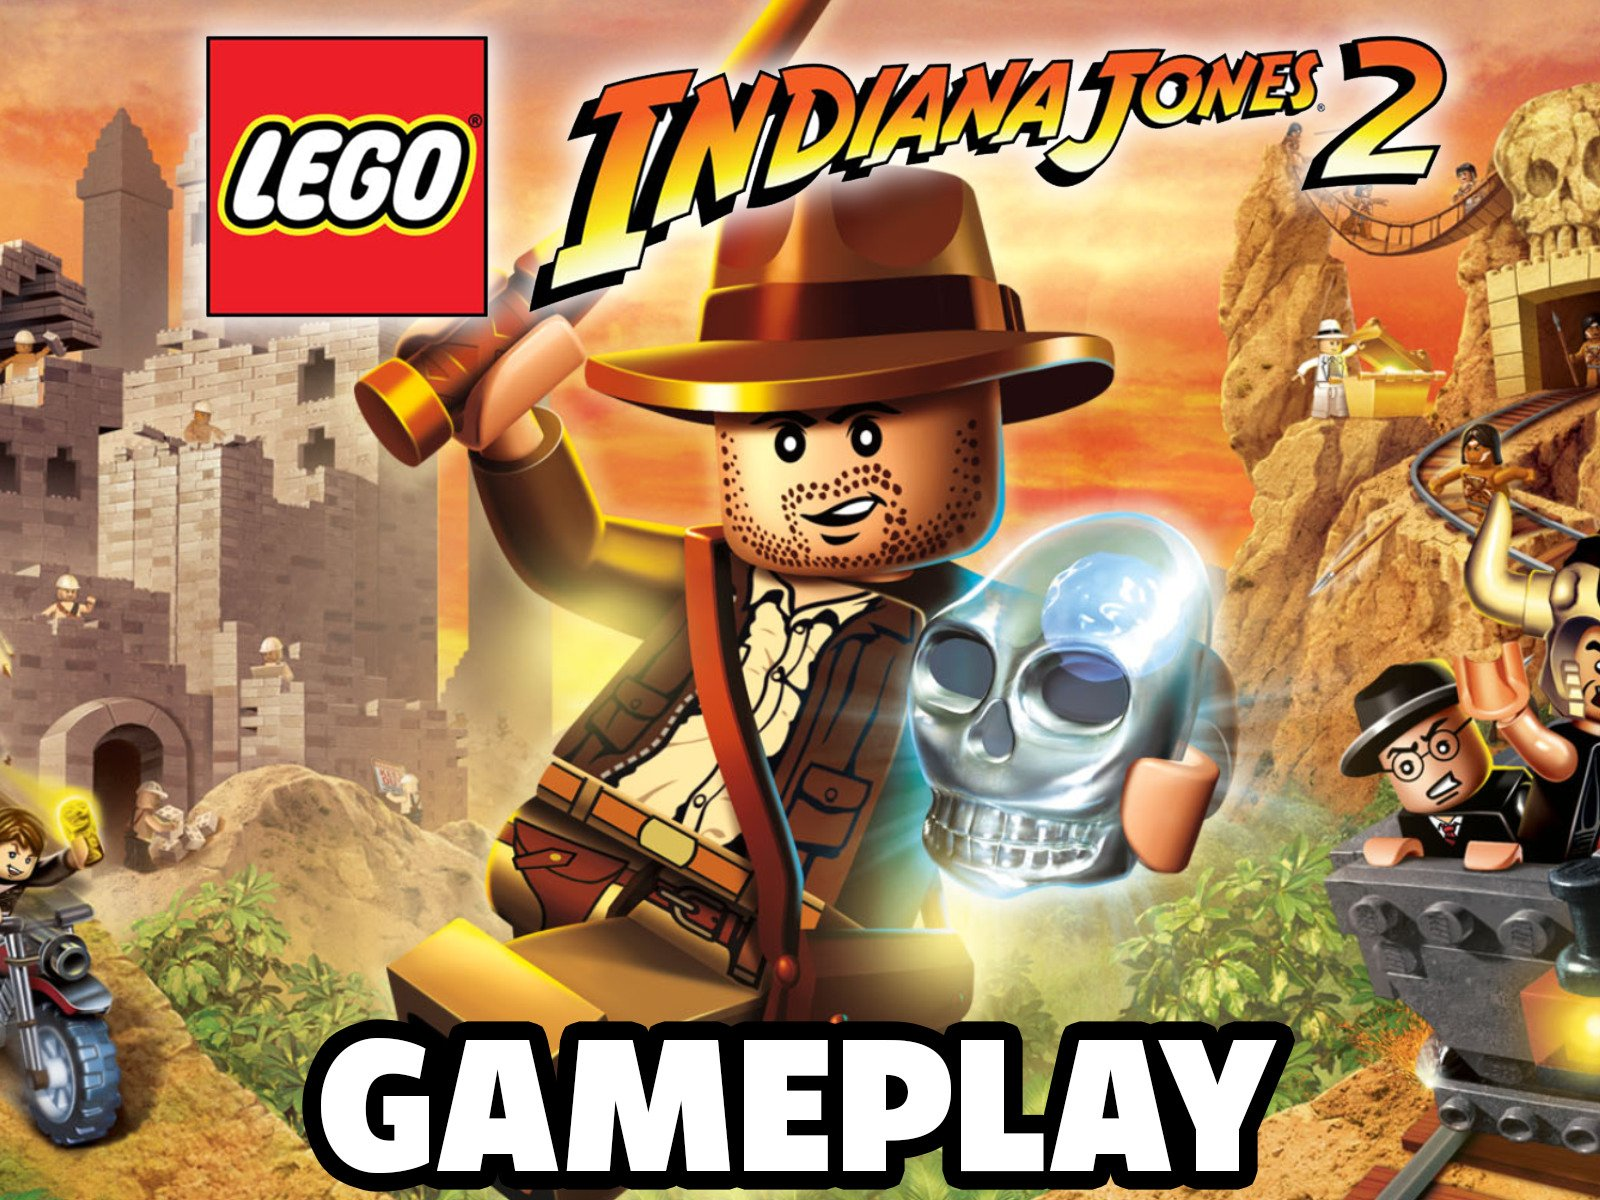 Clip: Lego Indiana Jones 2 Gameplay - Season 1